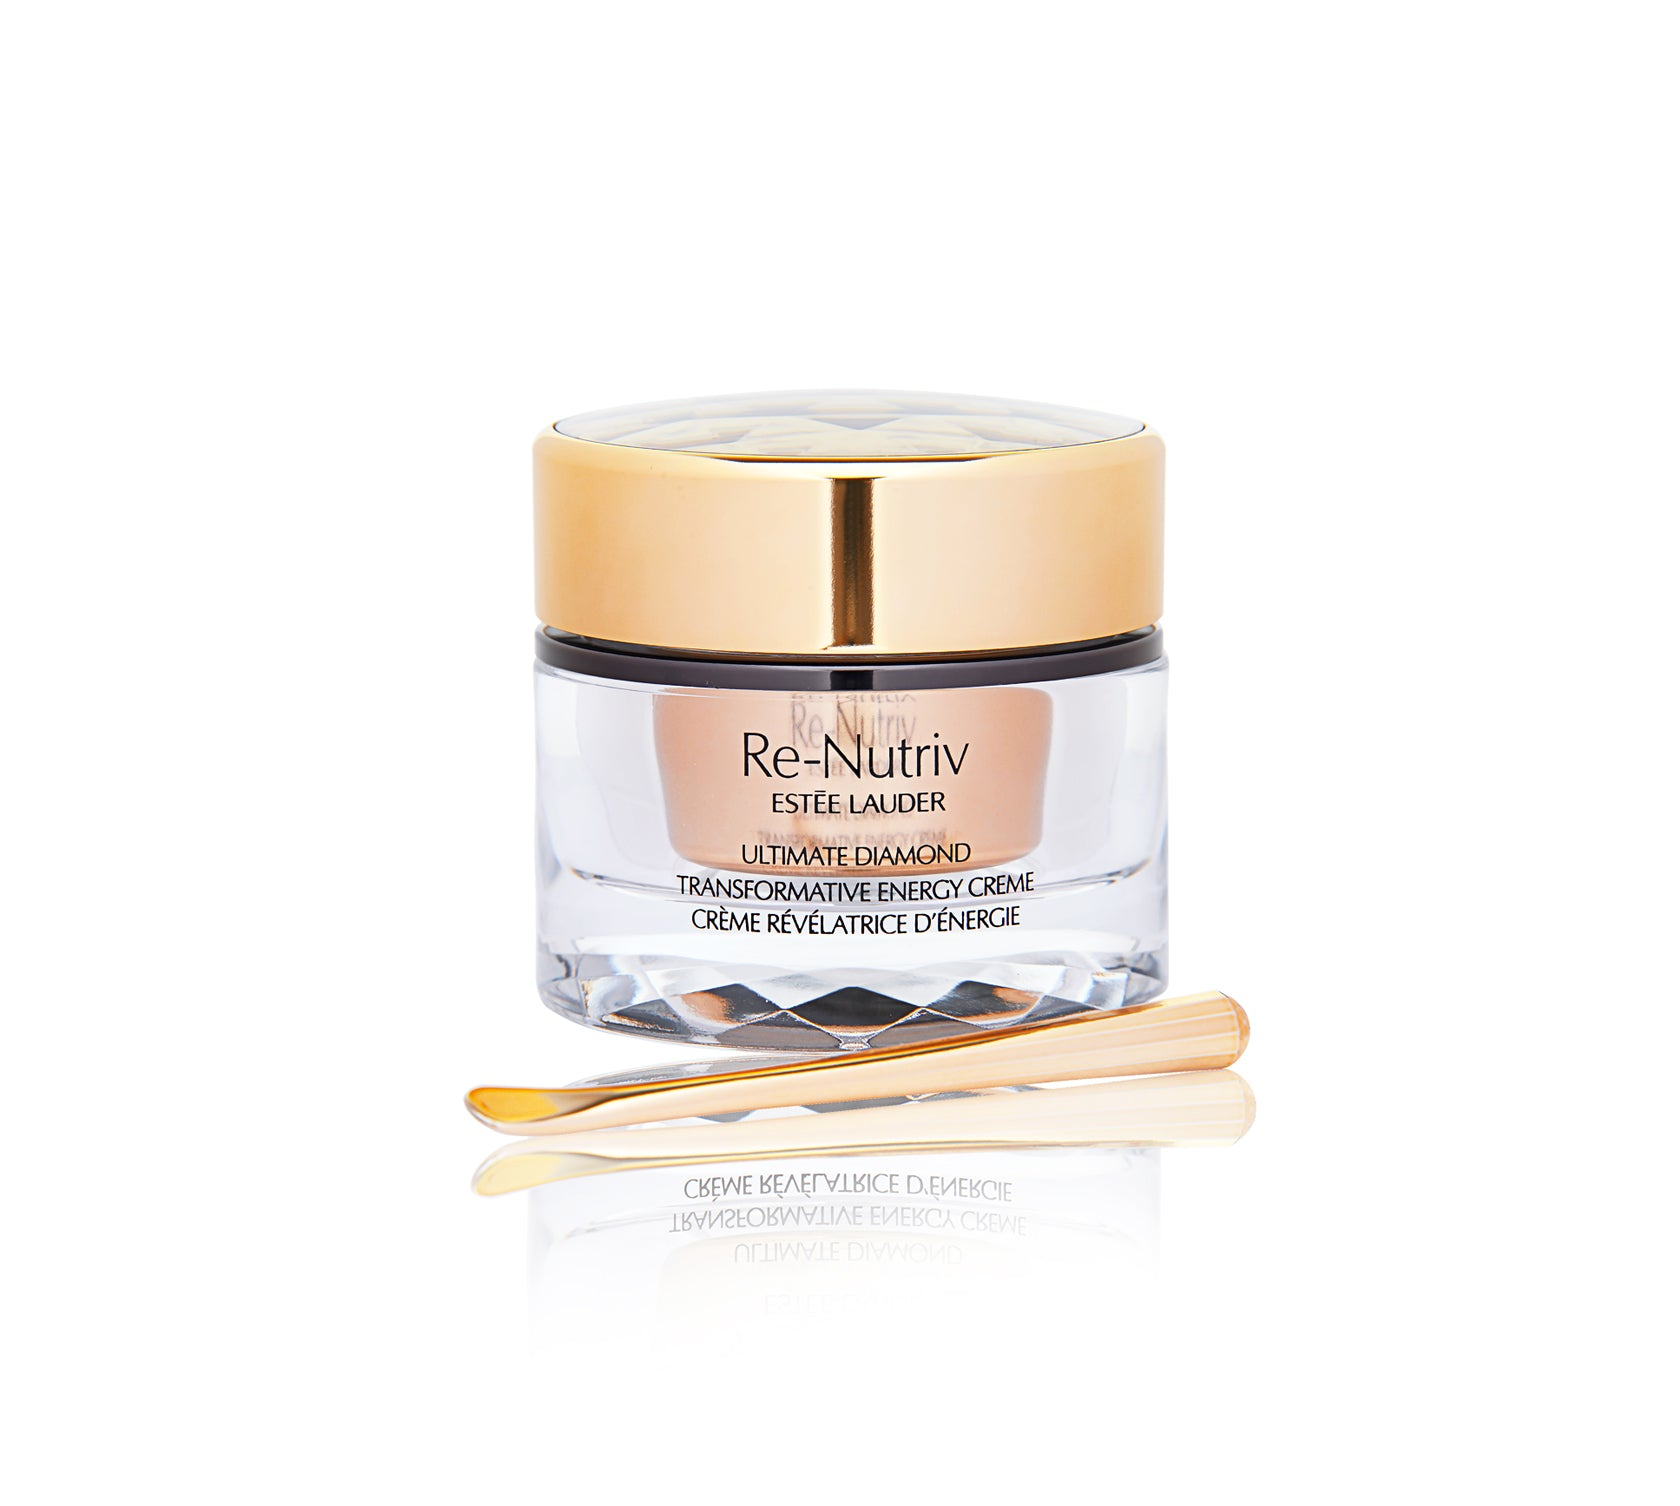 Re-Nutriv Ultimate Diamond Transformative Energy Creme